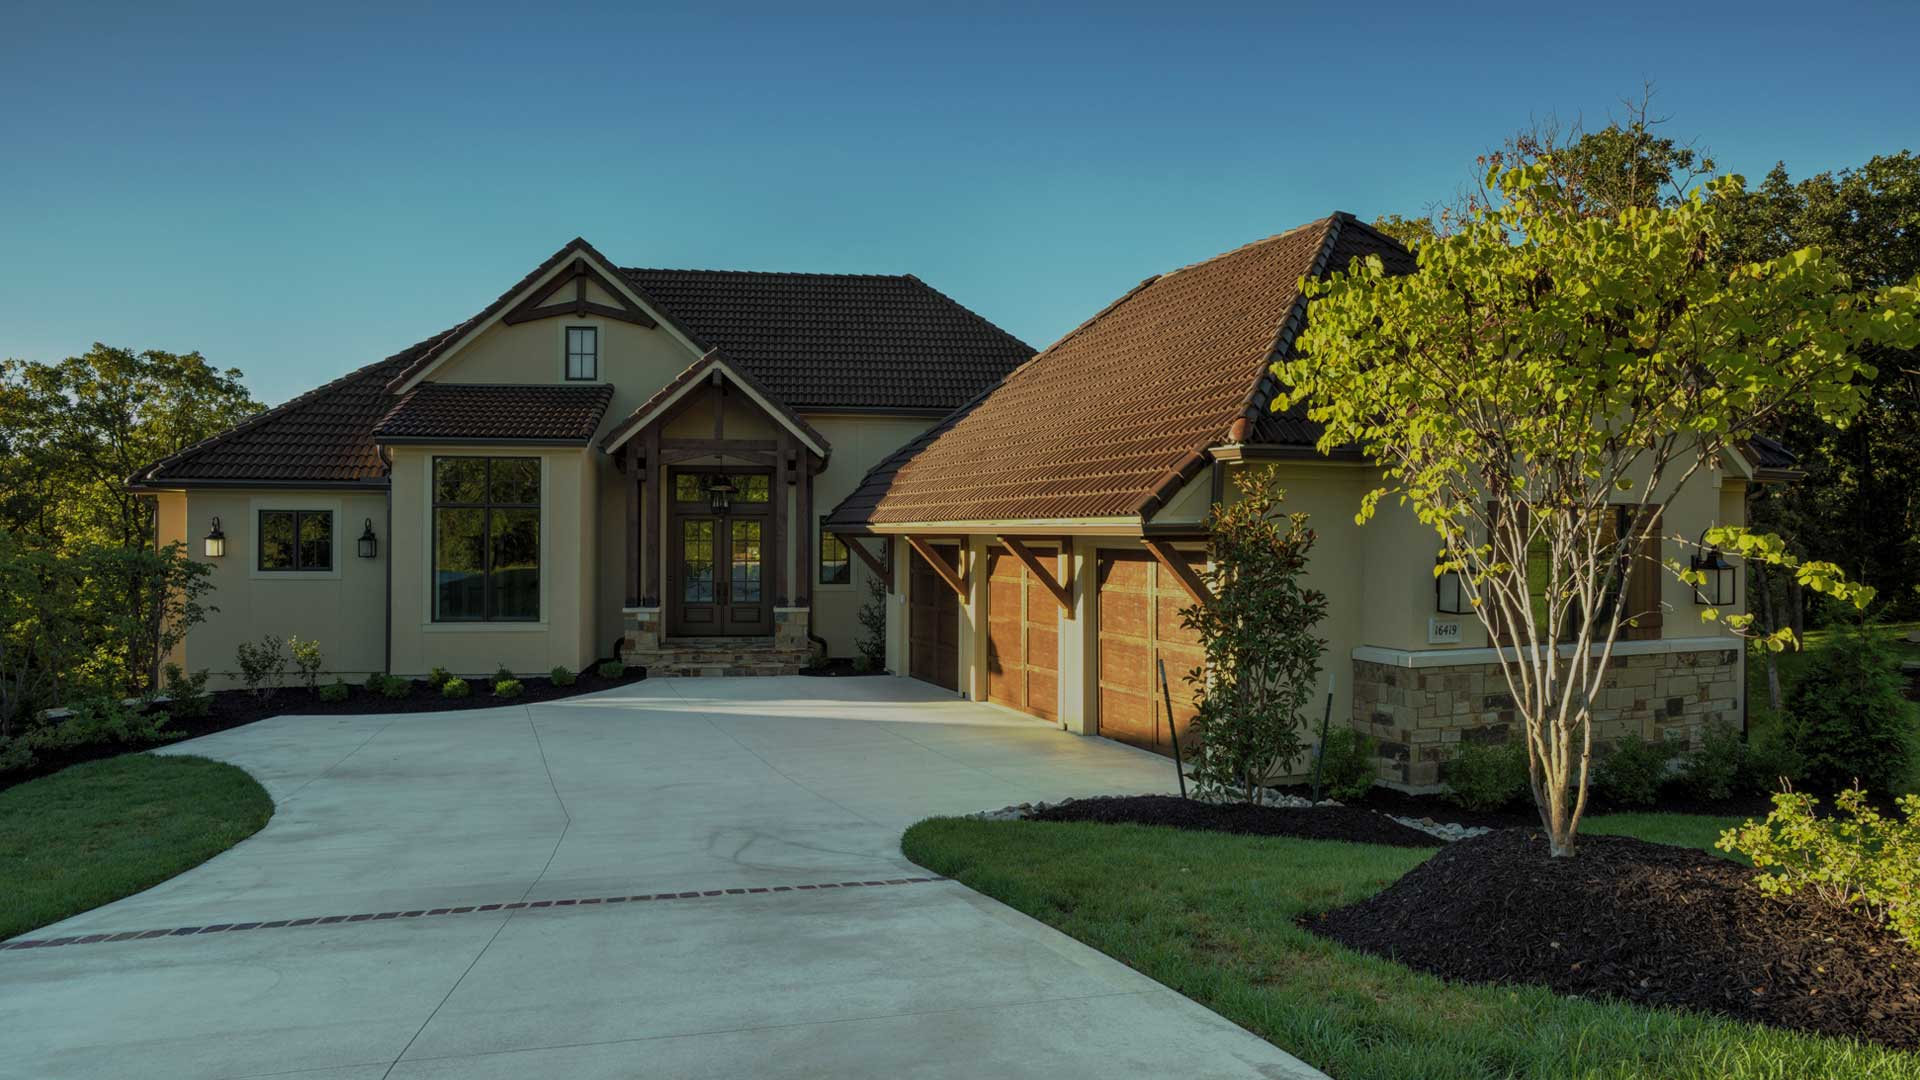 Forner Lavoy Home Builders Leading Home Builders In